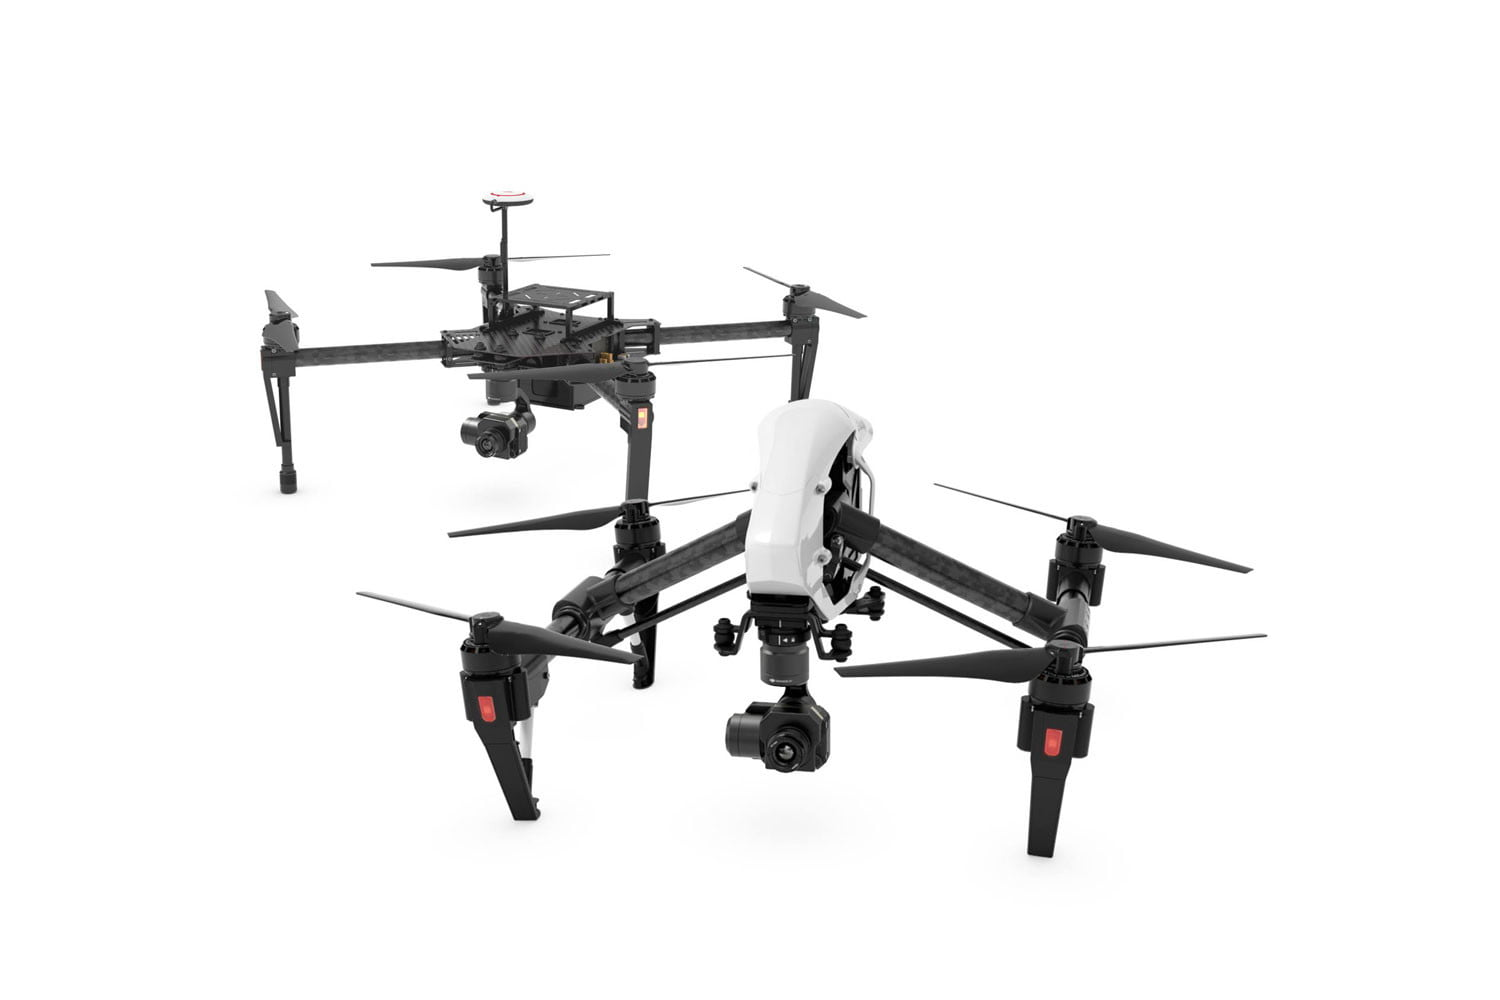 drone giant dji targets industry with specialist thermal imaging camera zenmuse xt flir 4